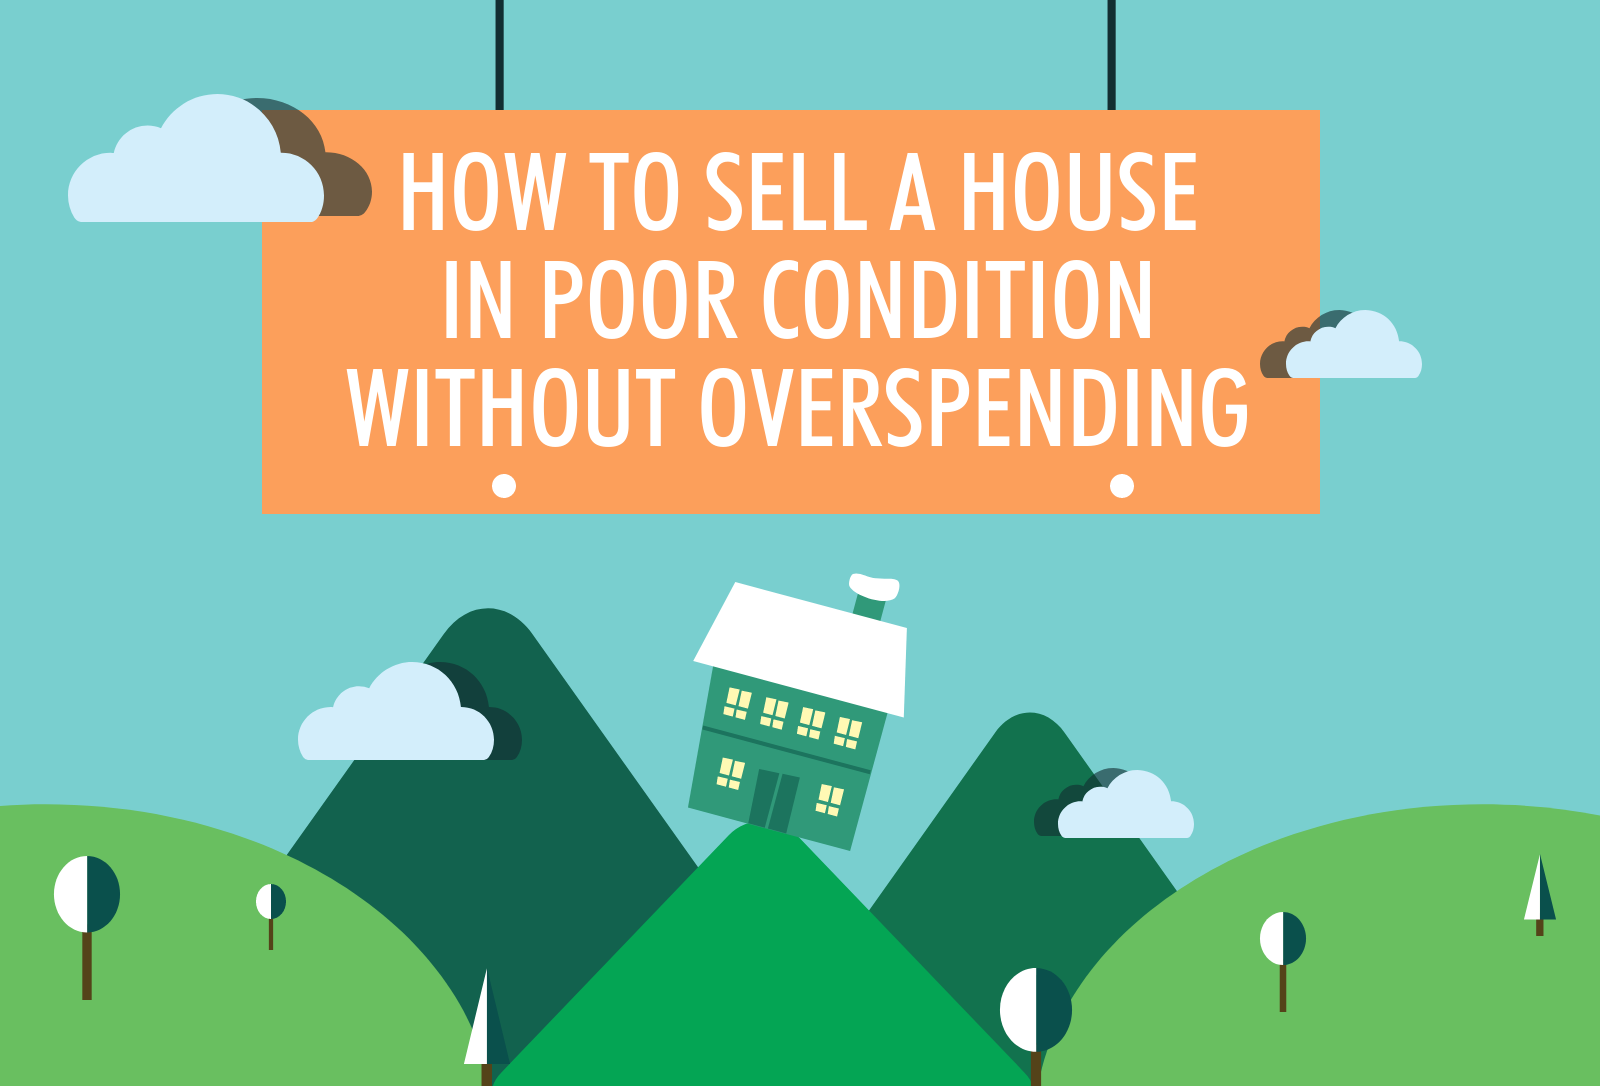 How to sell a house in poor condition without overspending